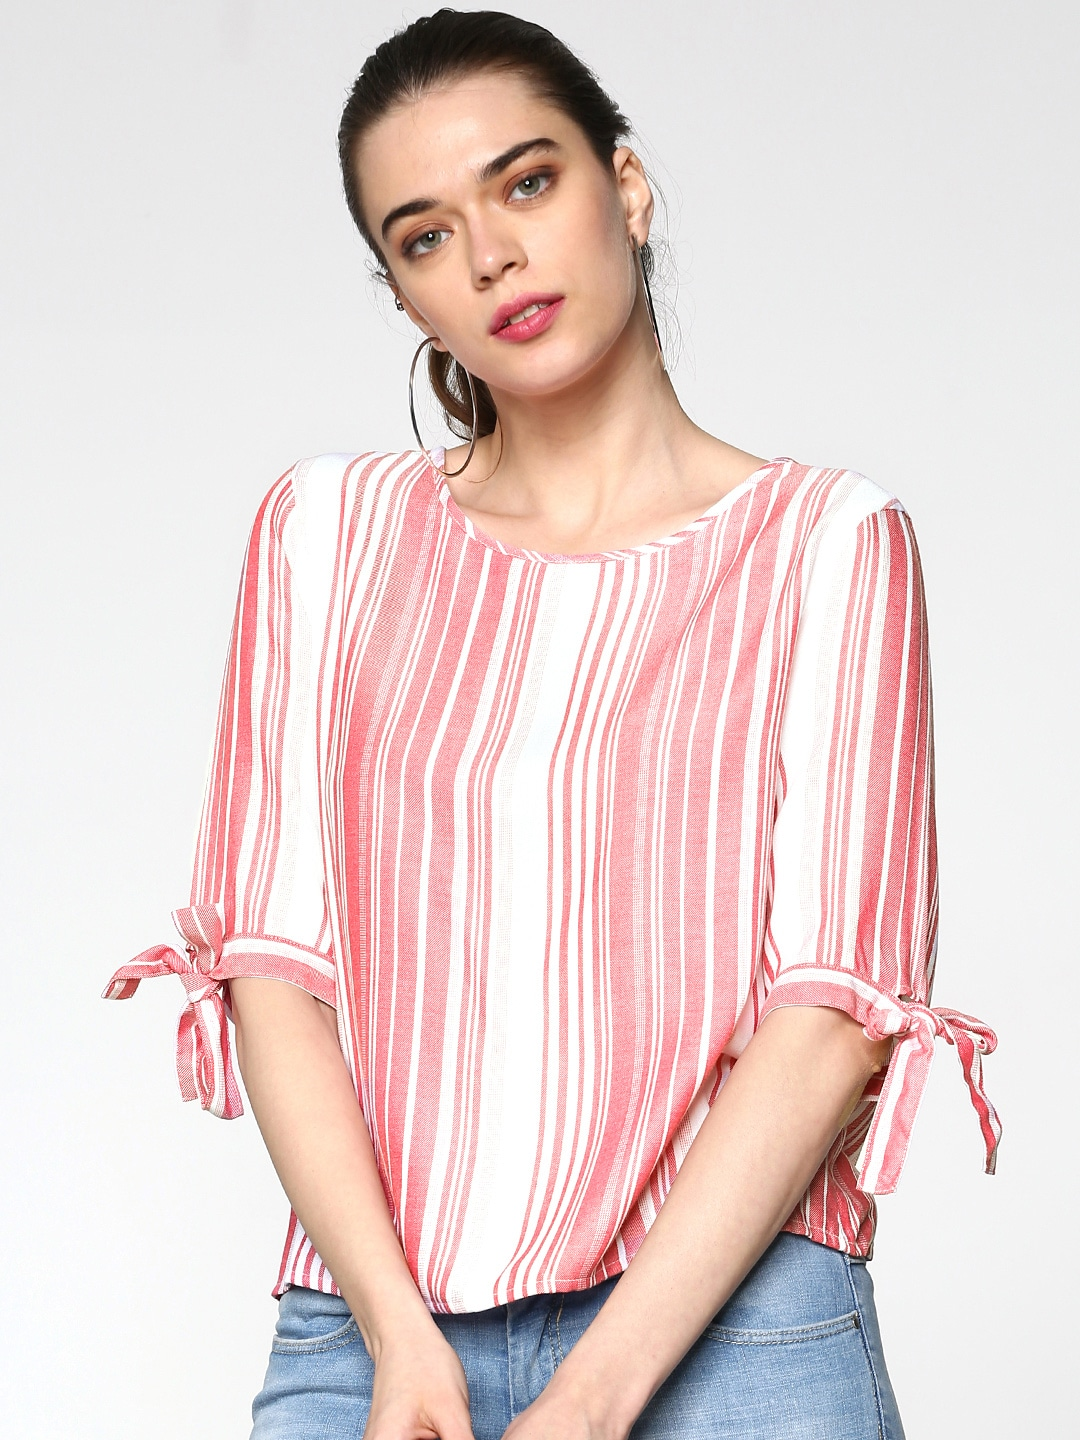 a26723325ebaa Women Striped Tops - Buy Women Striped Tops online in India